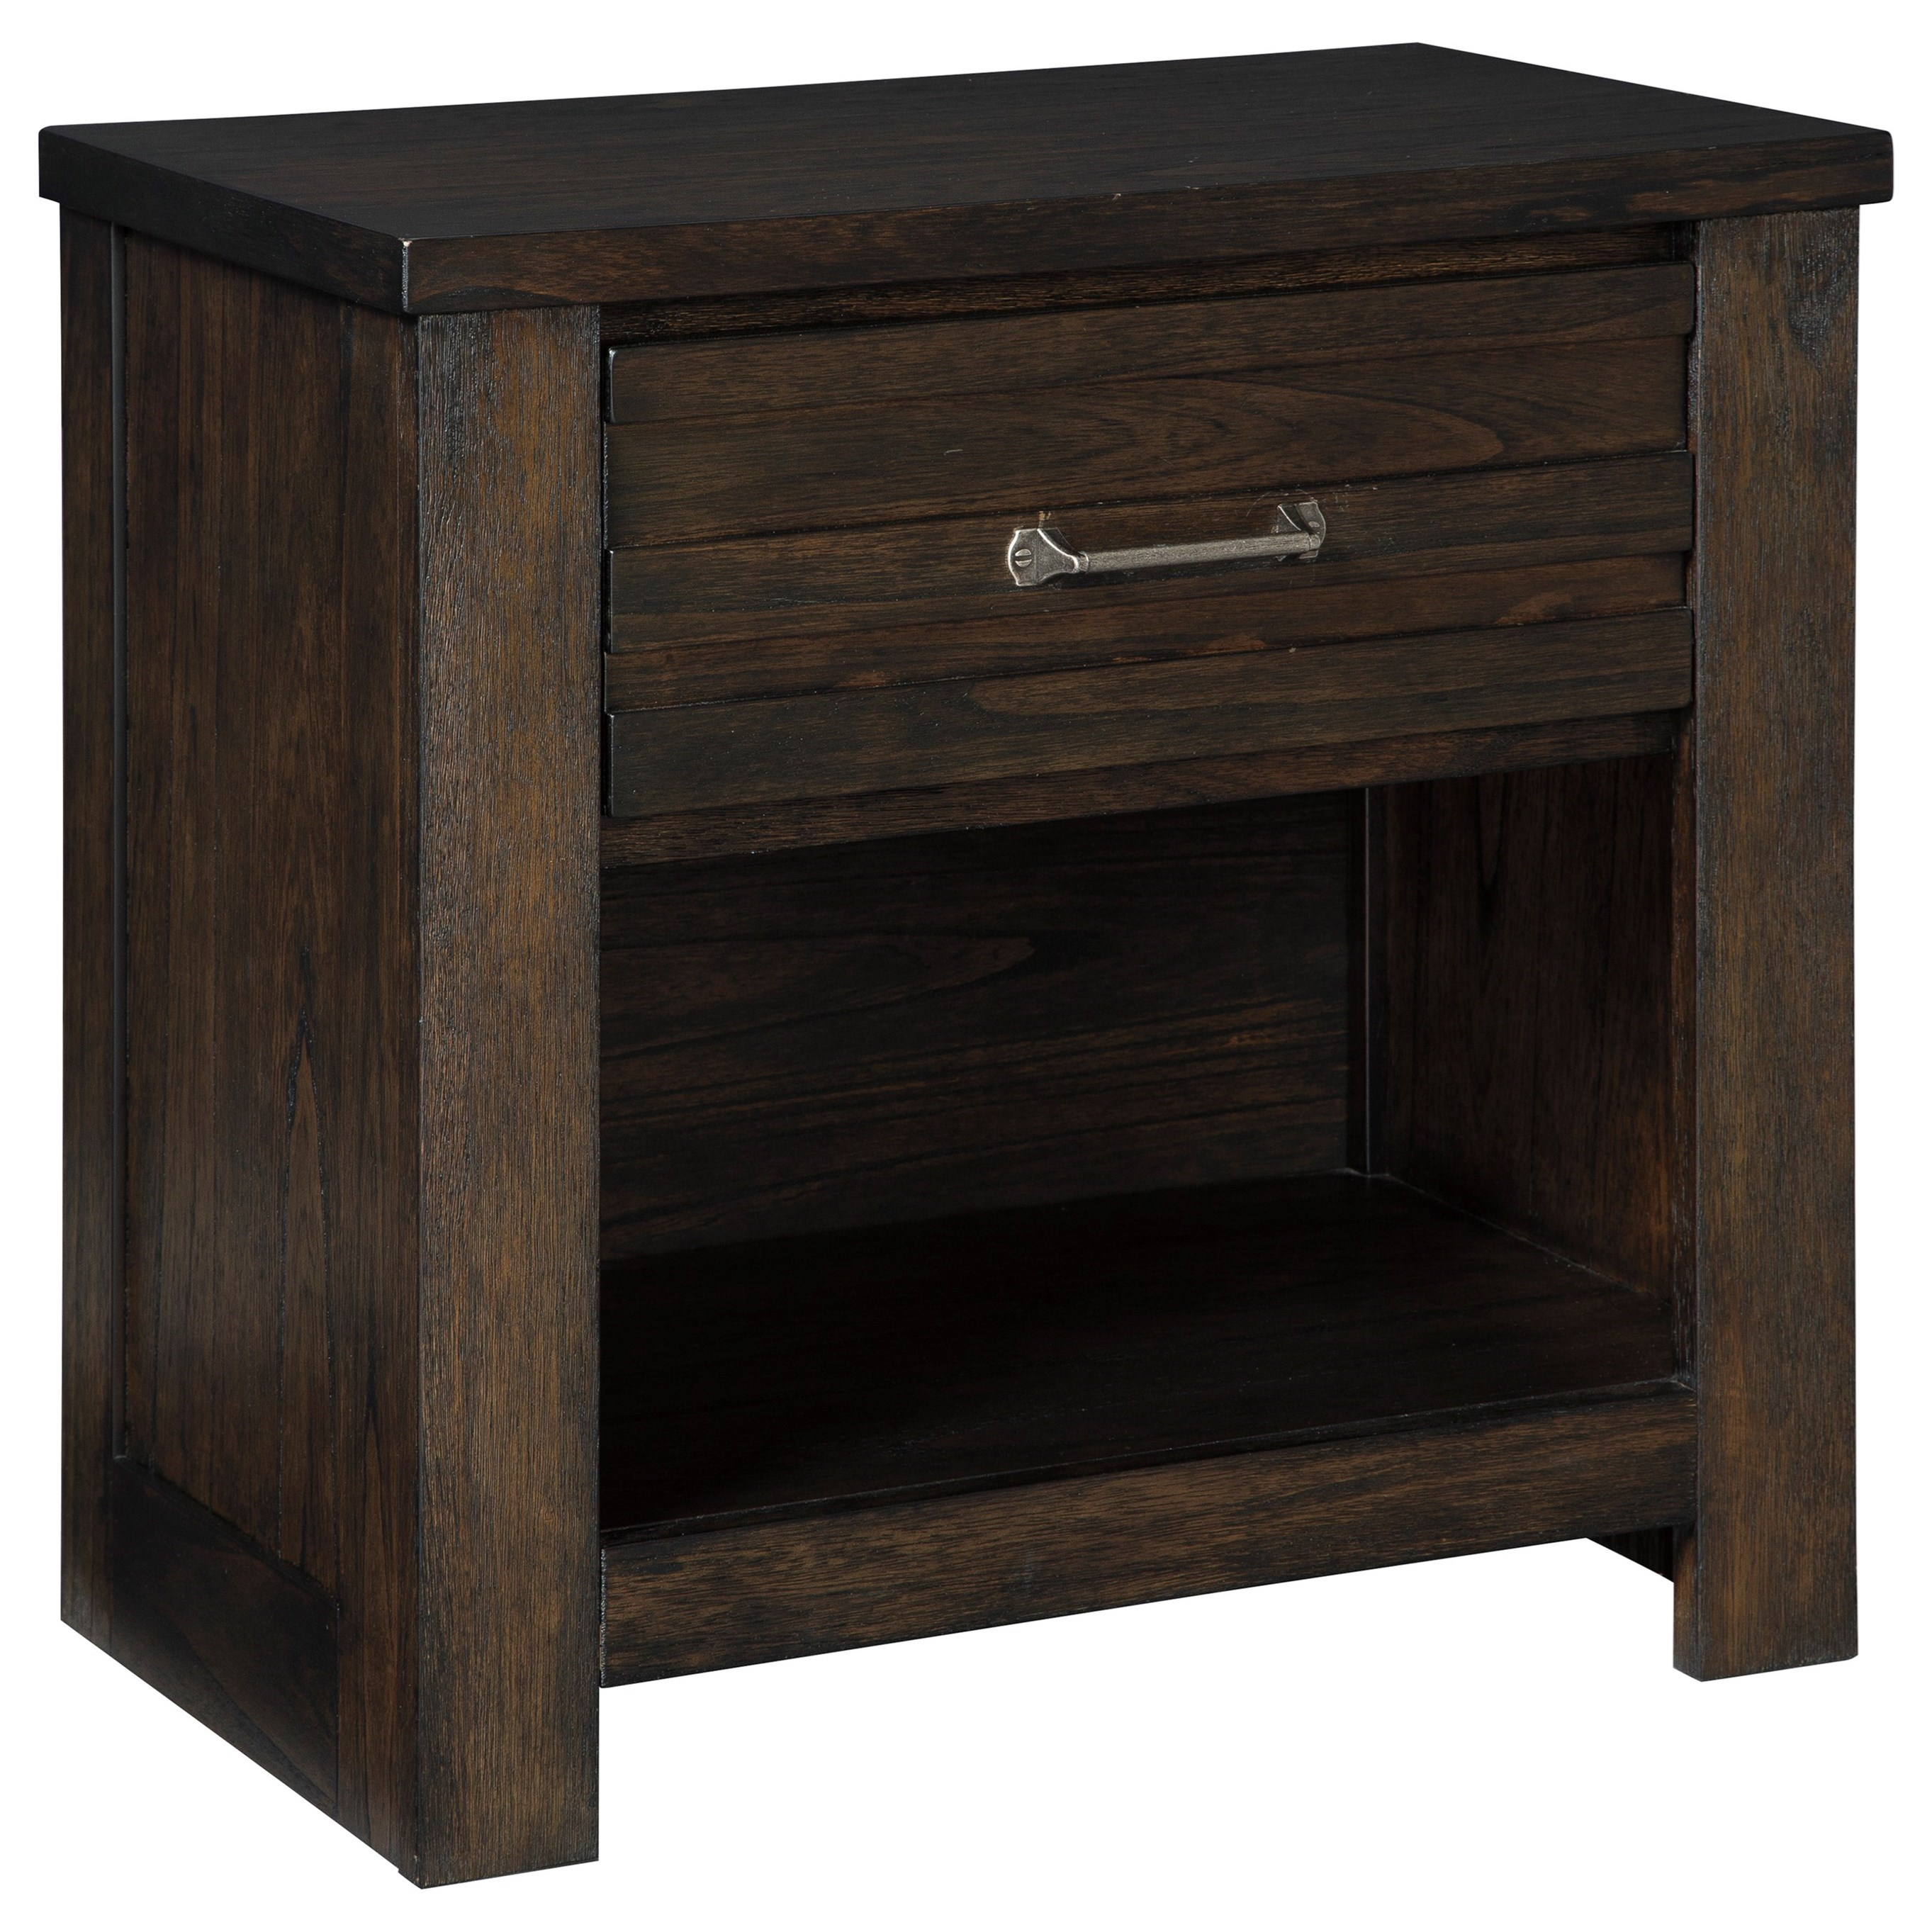 Darbry One Drawer Night Stand by Signature Design by Ashley at Sparks HomeStore